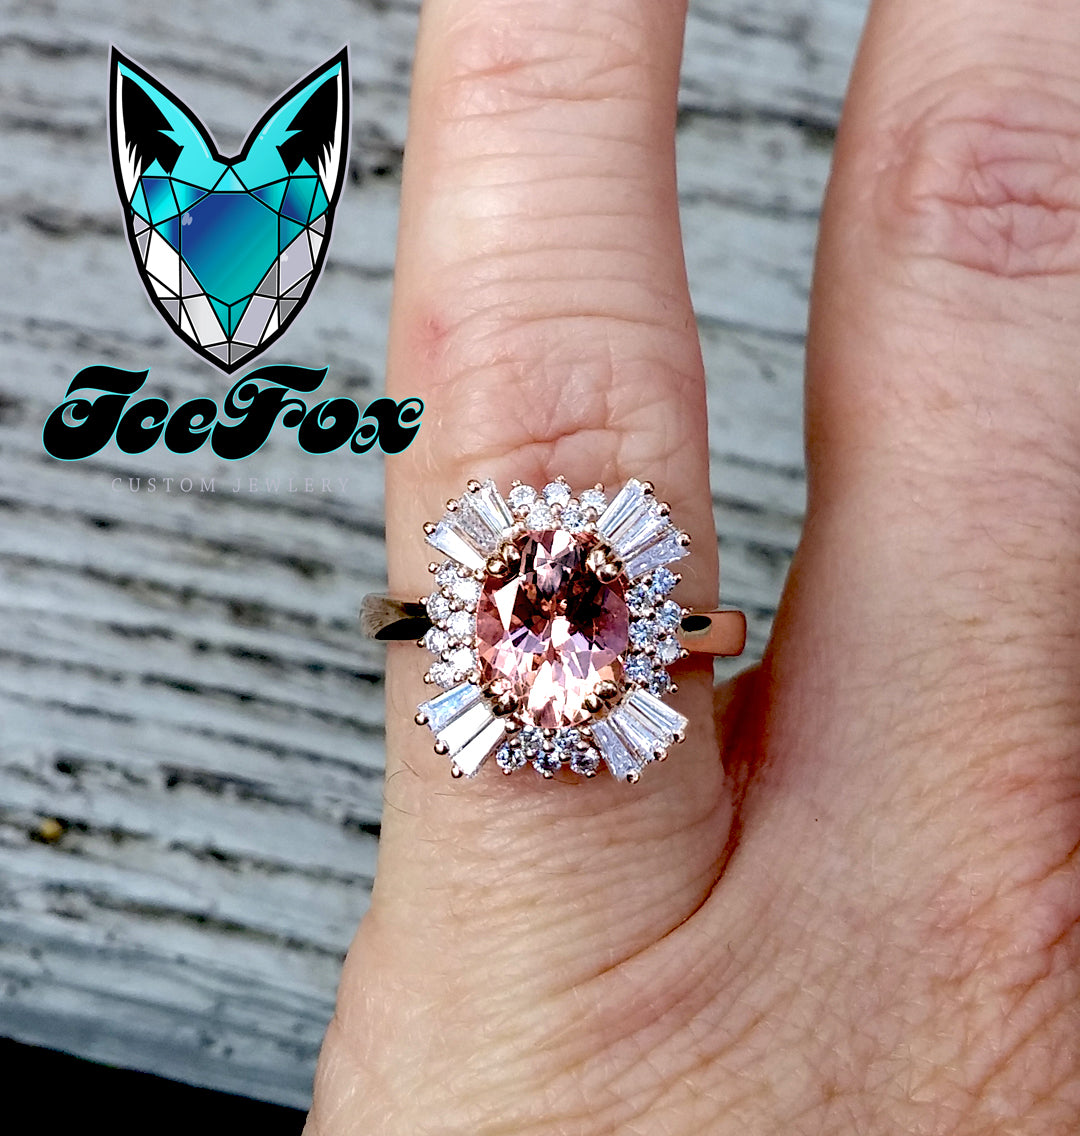 Morganite - Gatsby Inspired - Morganite 1.75ct, 7 x 9mm Oval Morganite in a 14k Rose Gold Diamond Halo - In The IceBox